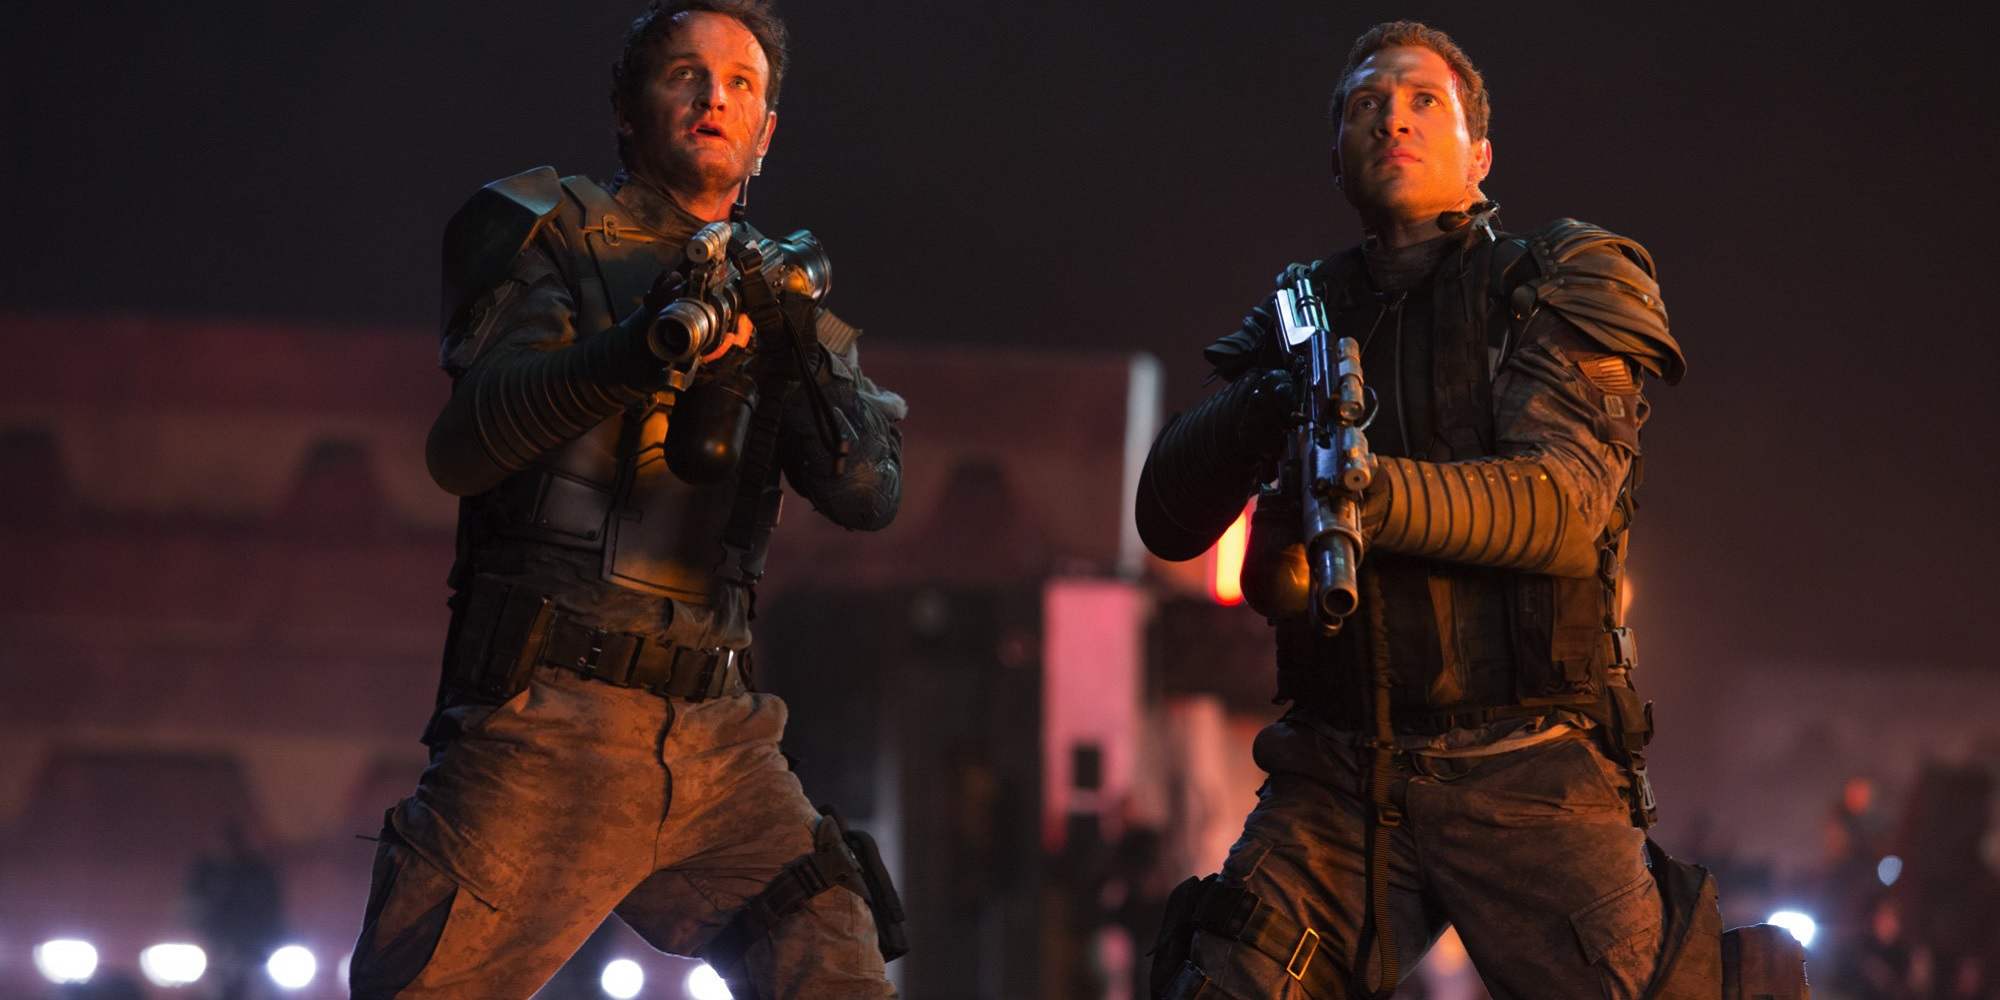 Jason Clarke and Jai Courtney in Terminator Genisys 18 Sequels That Never Should Have Happened